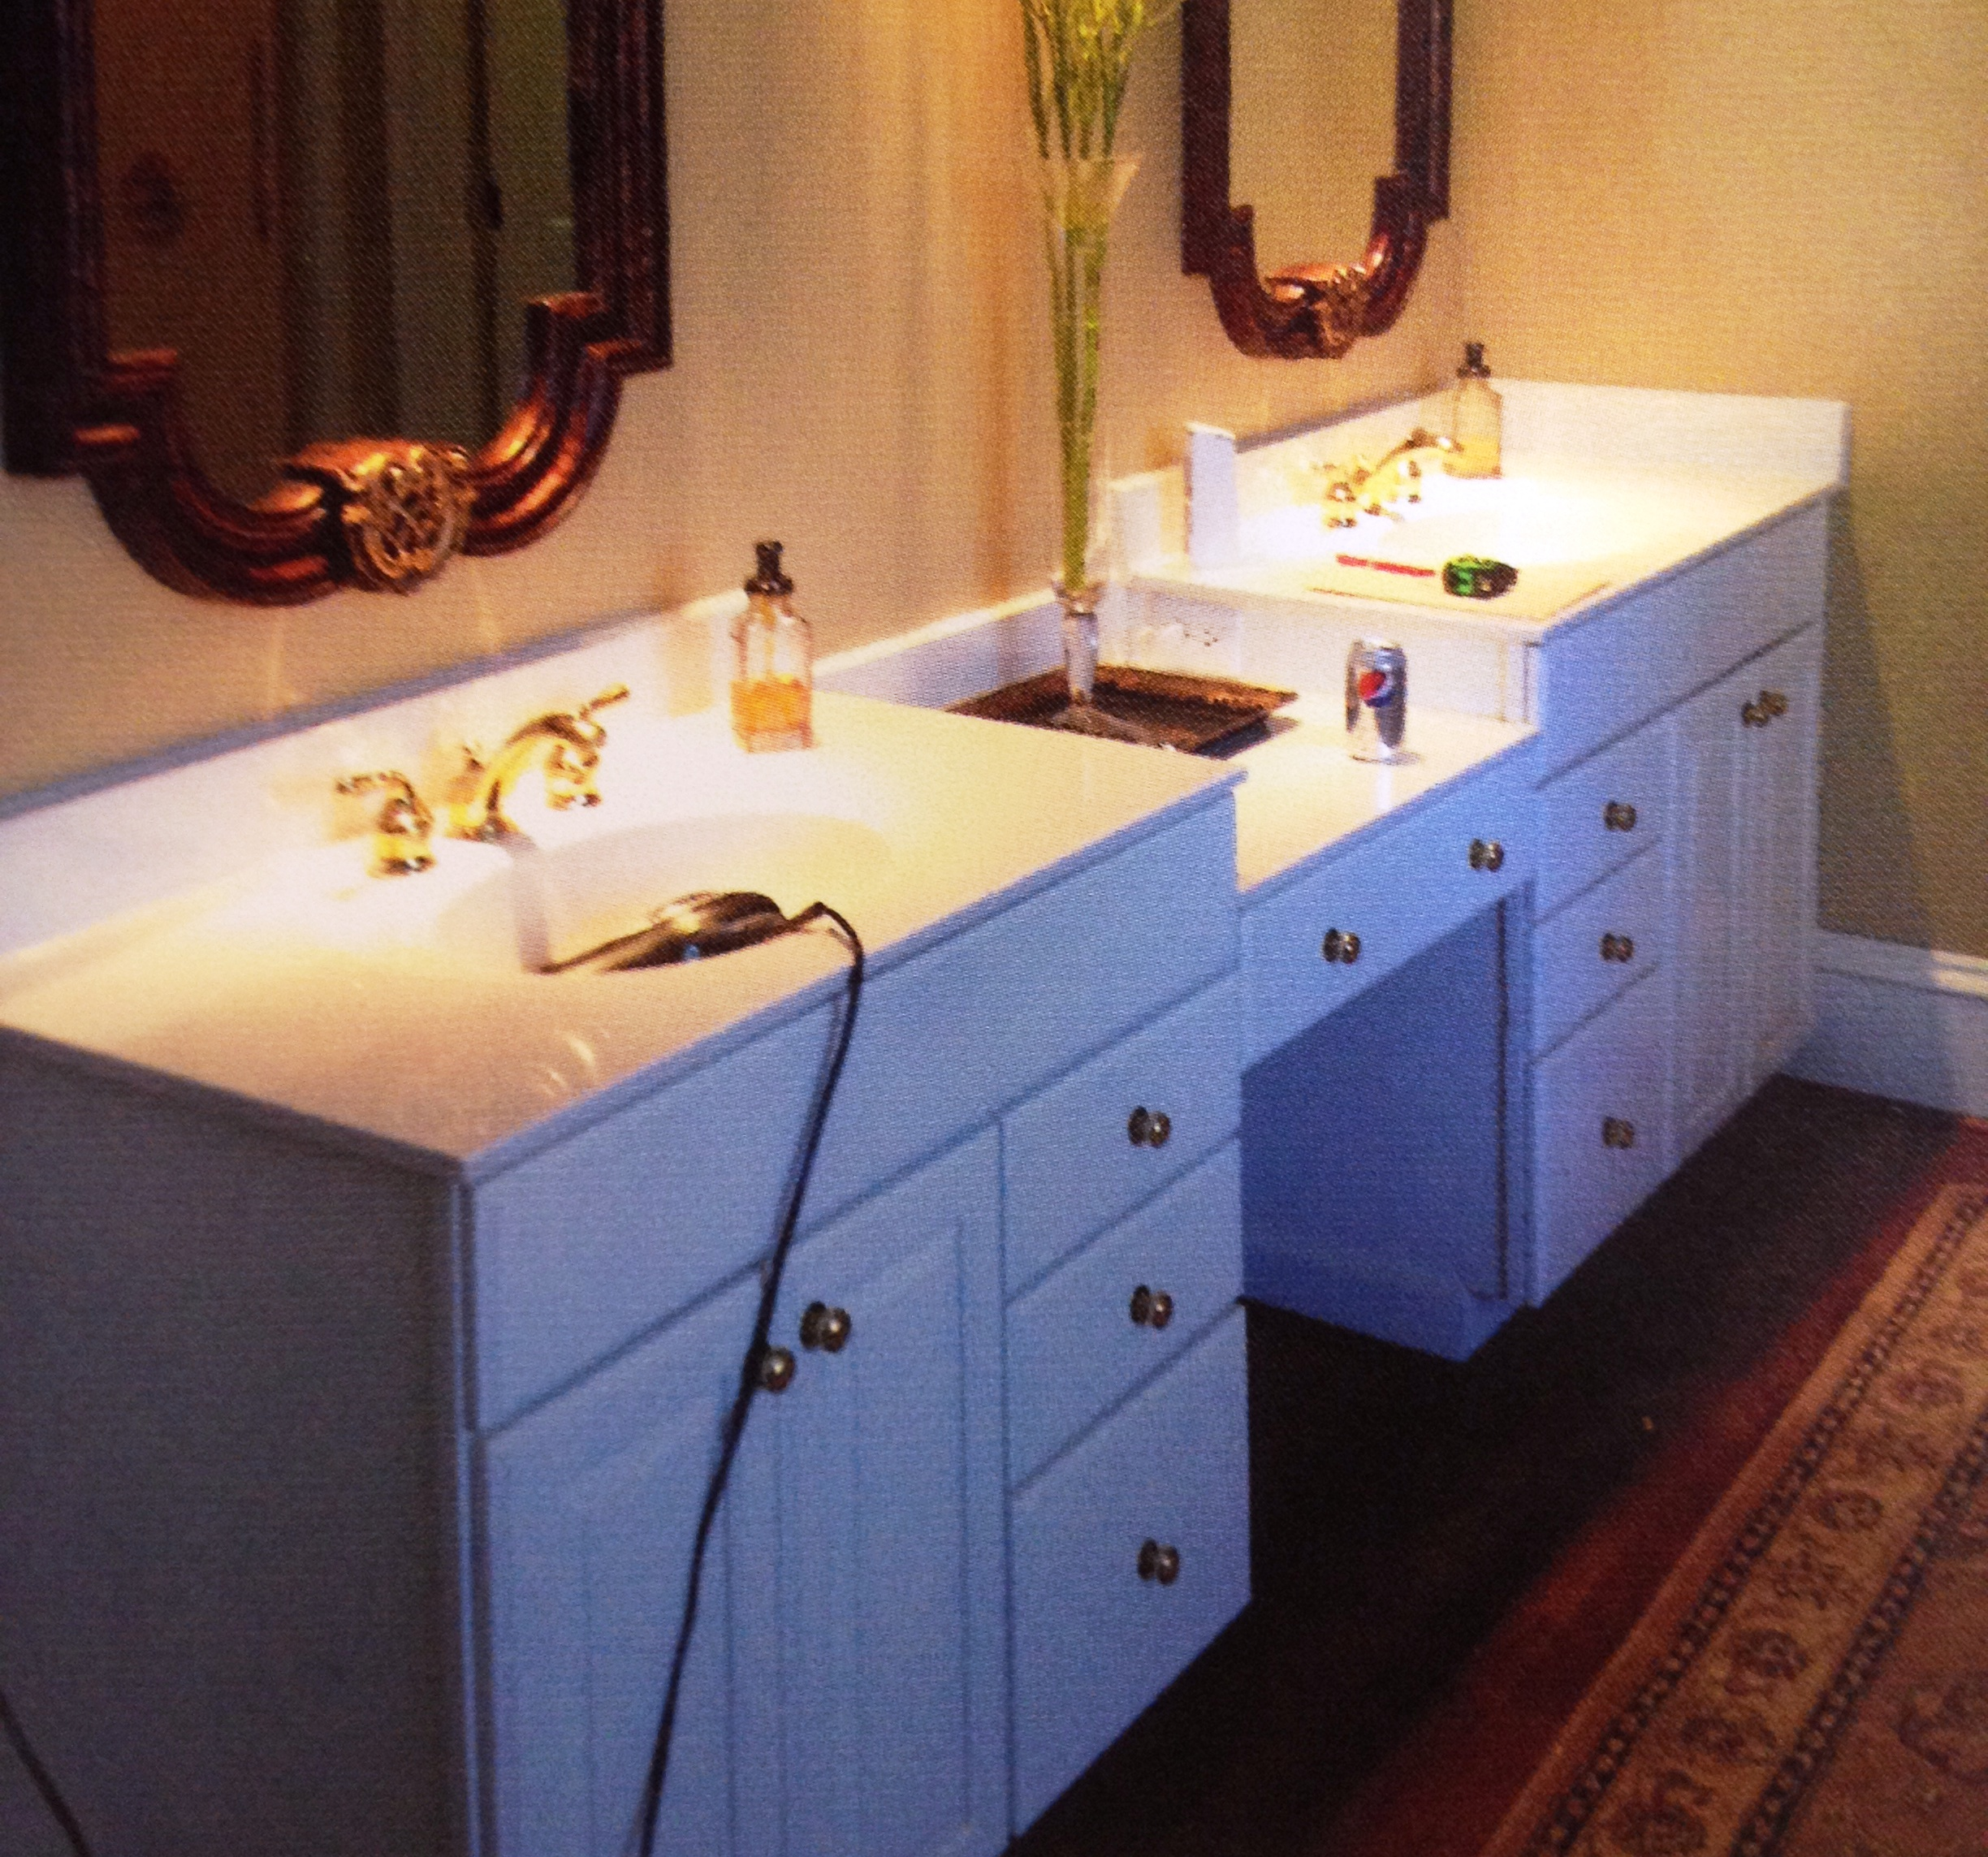 Dated and drab, this is one vanity in need of a facelift.